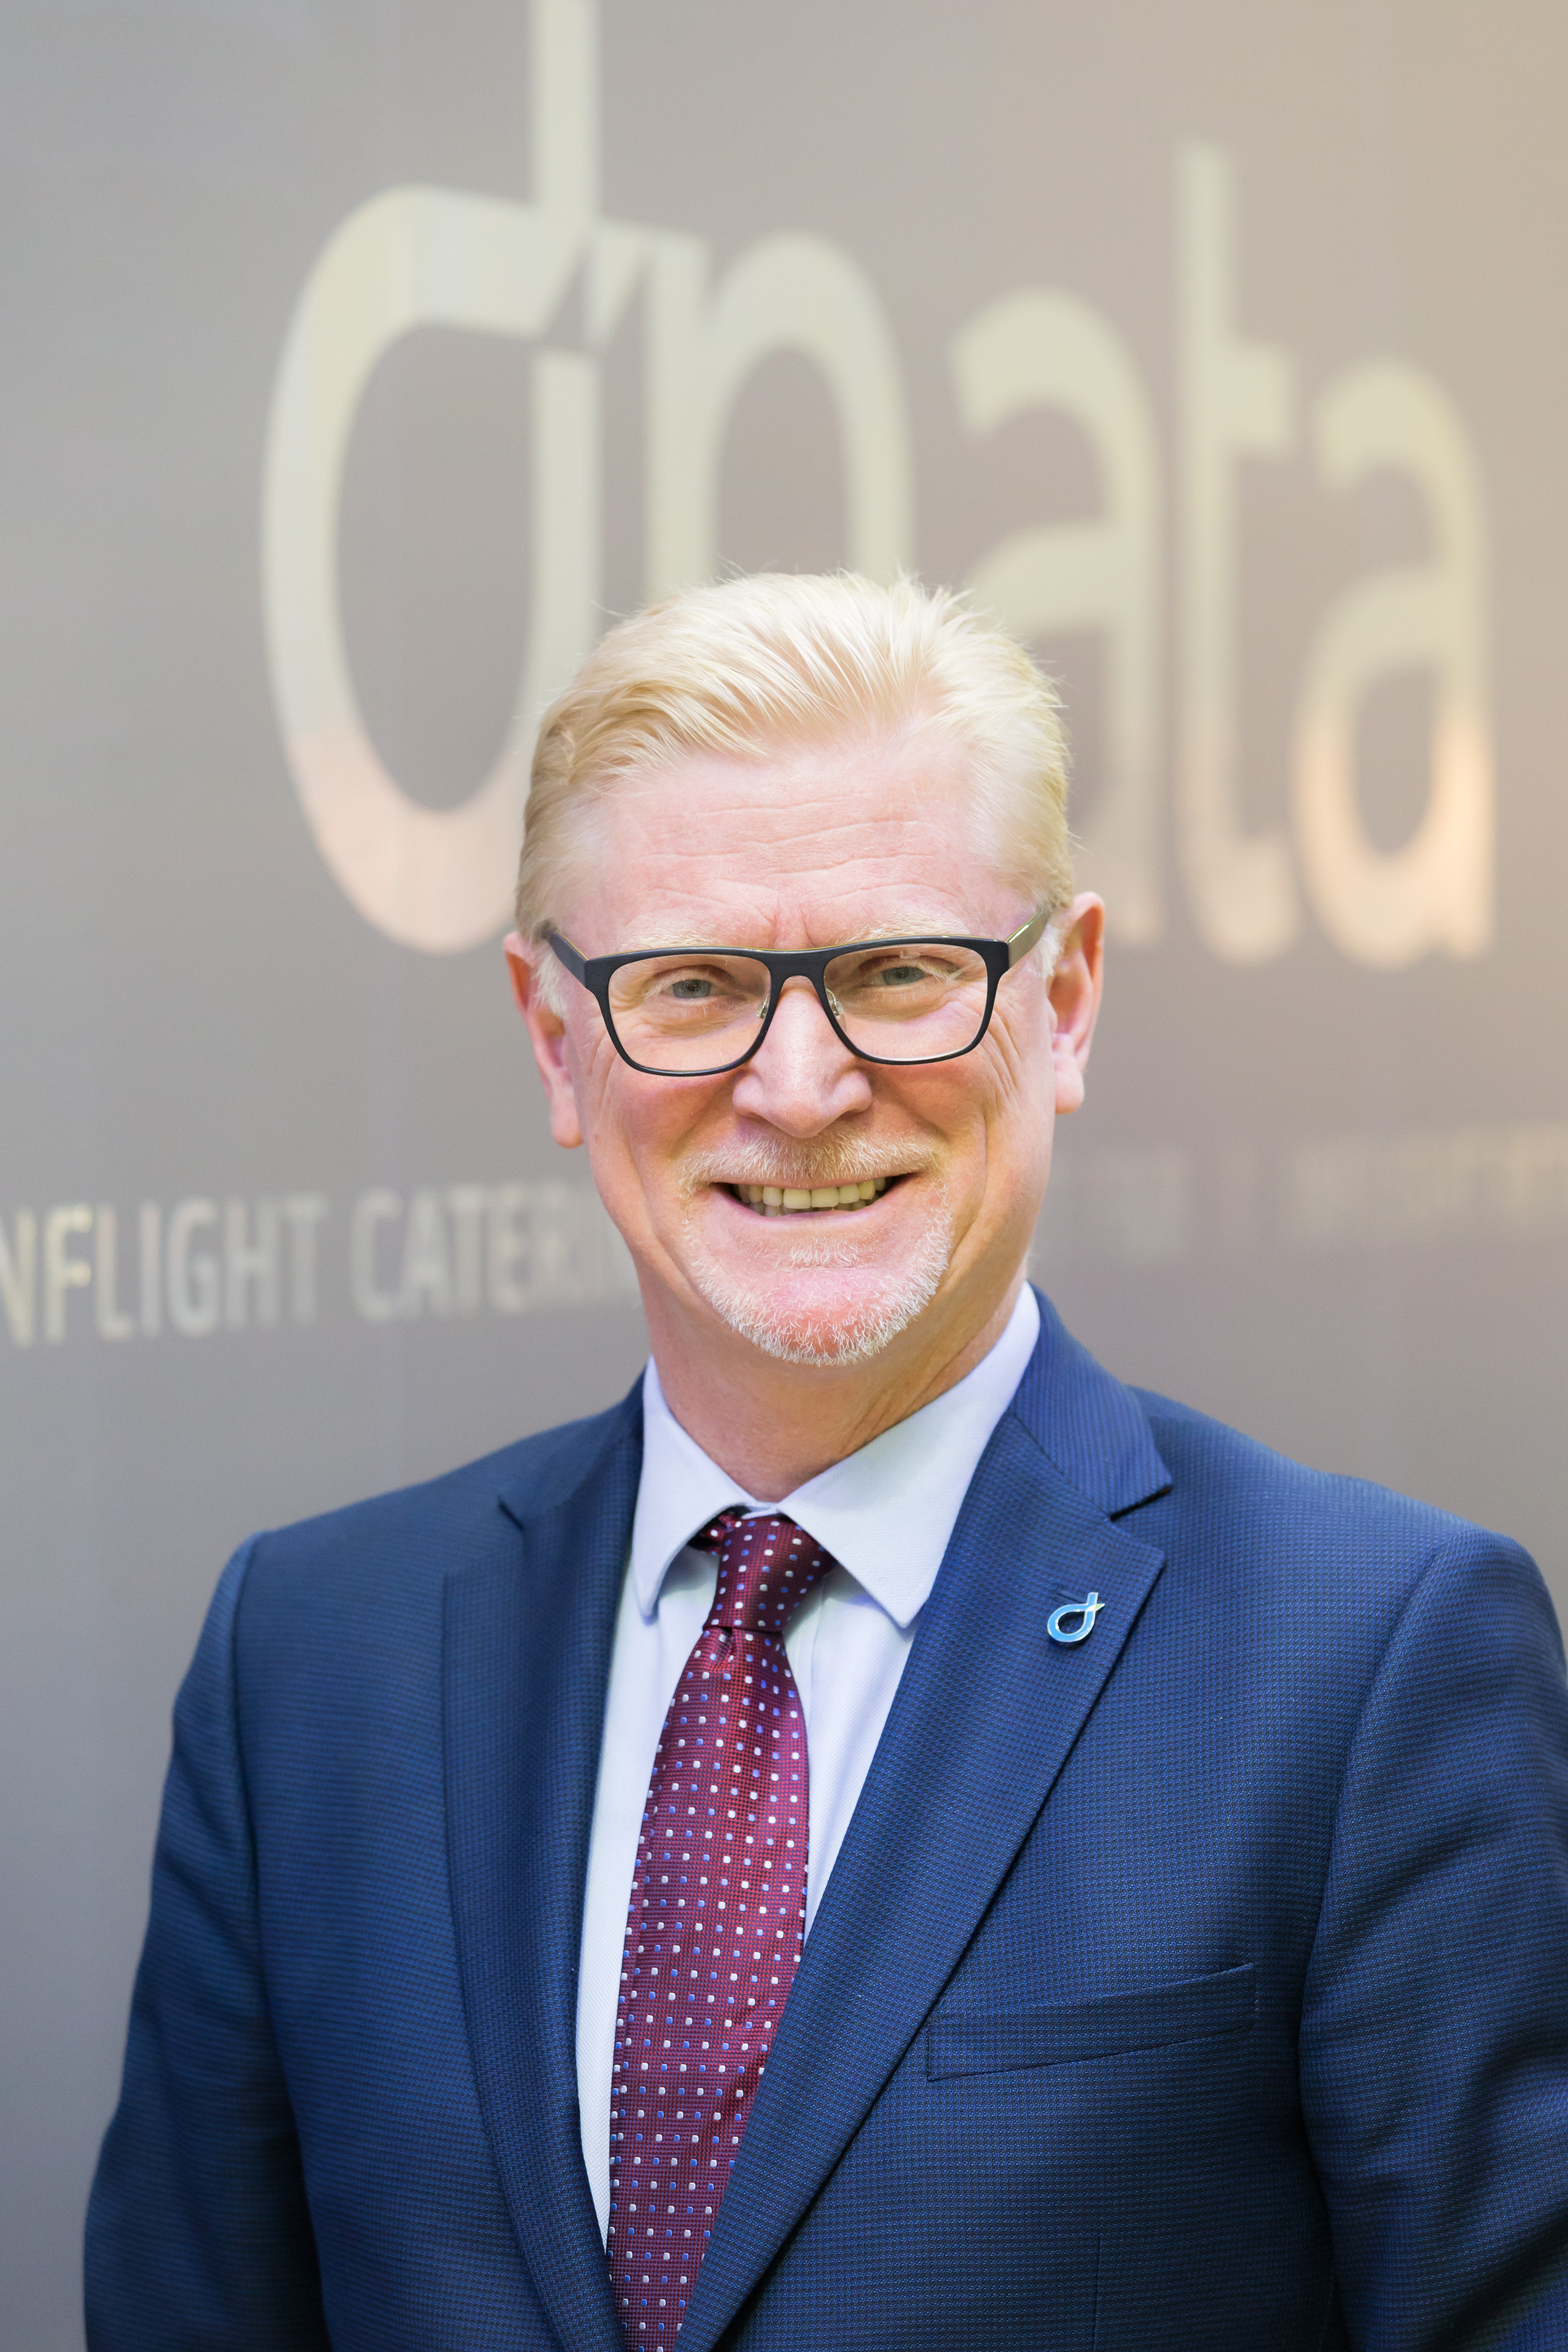 dnata appoints Stephen Templeton as Global Head of Culinary